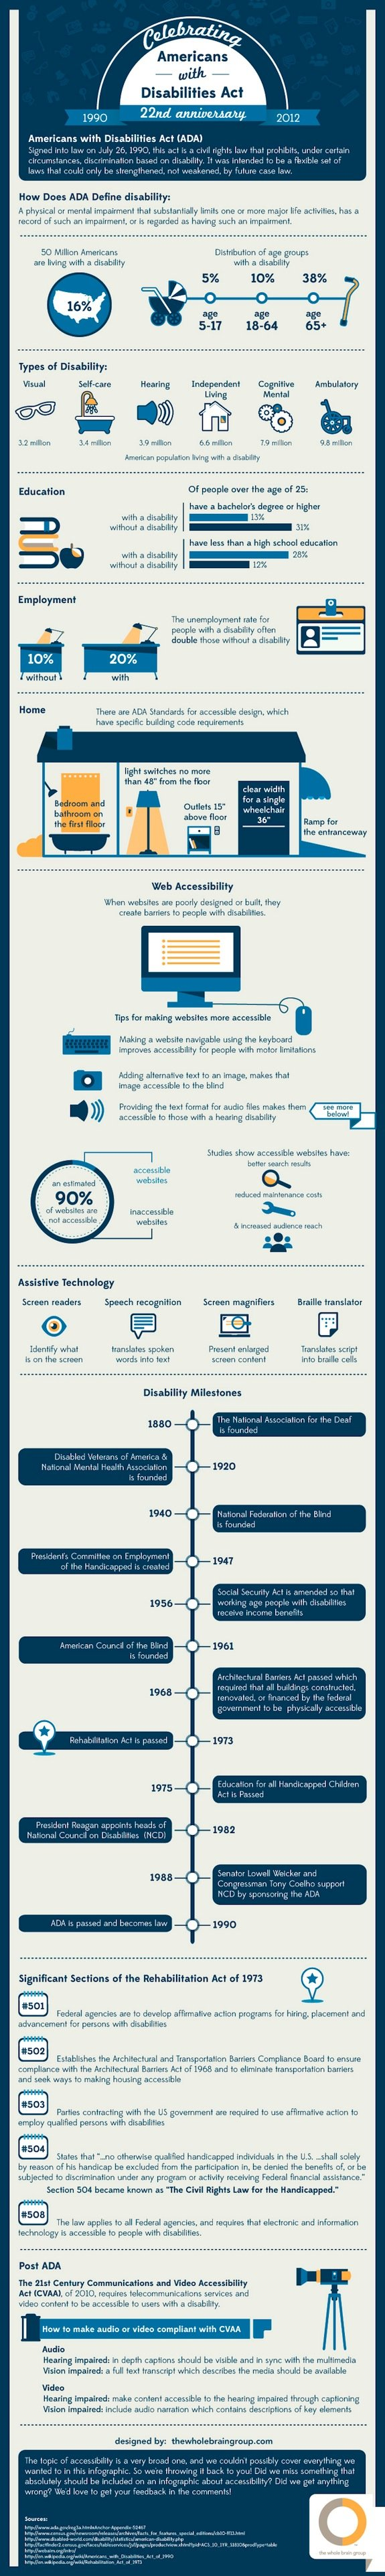 celebrating americans with disabilities act #infographic